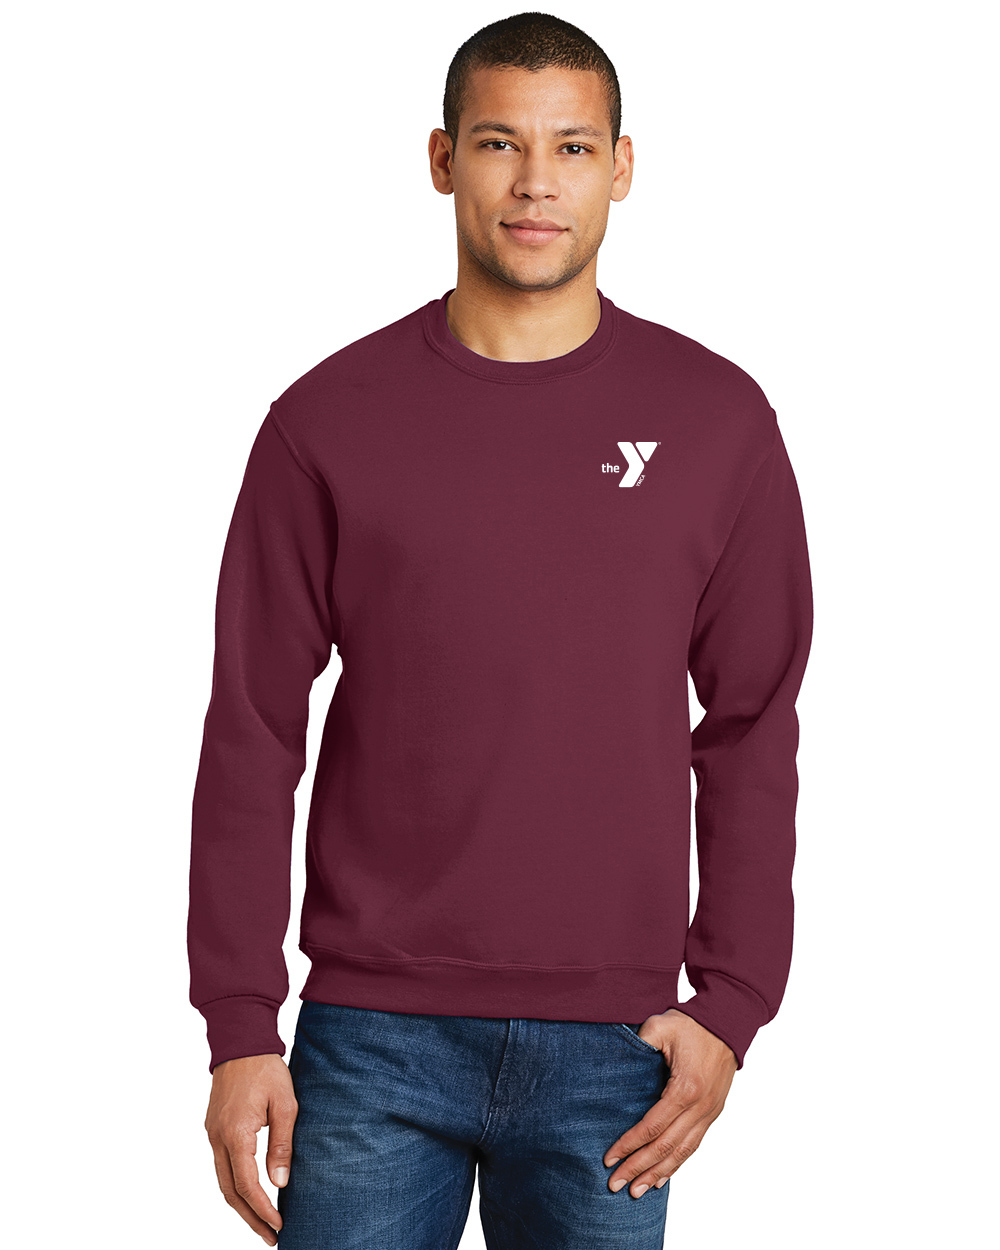 Adult YMCA Apparel subcategory image